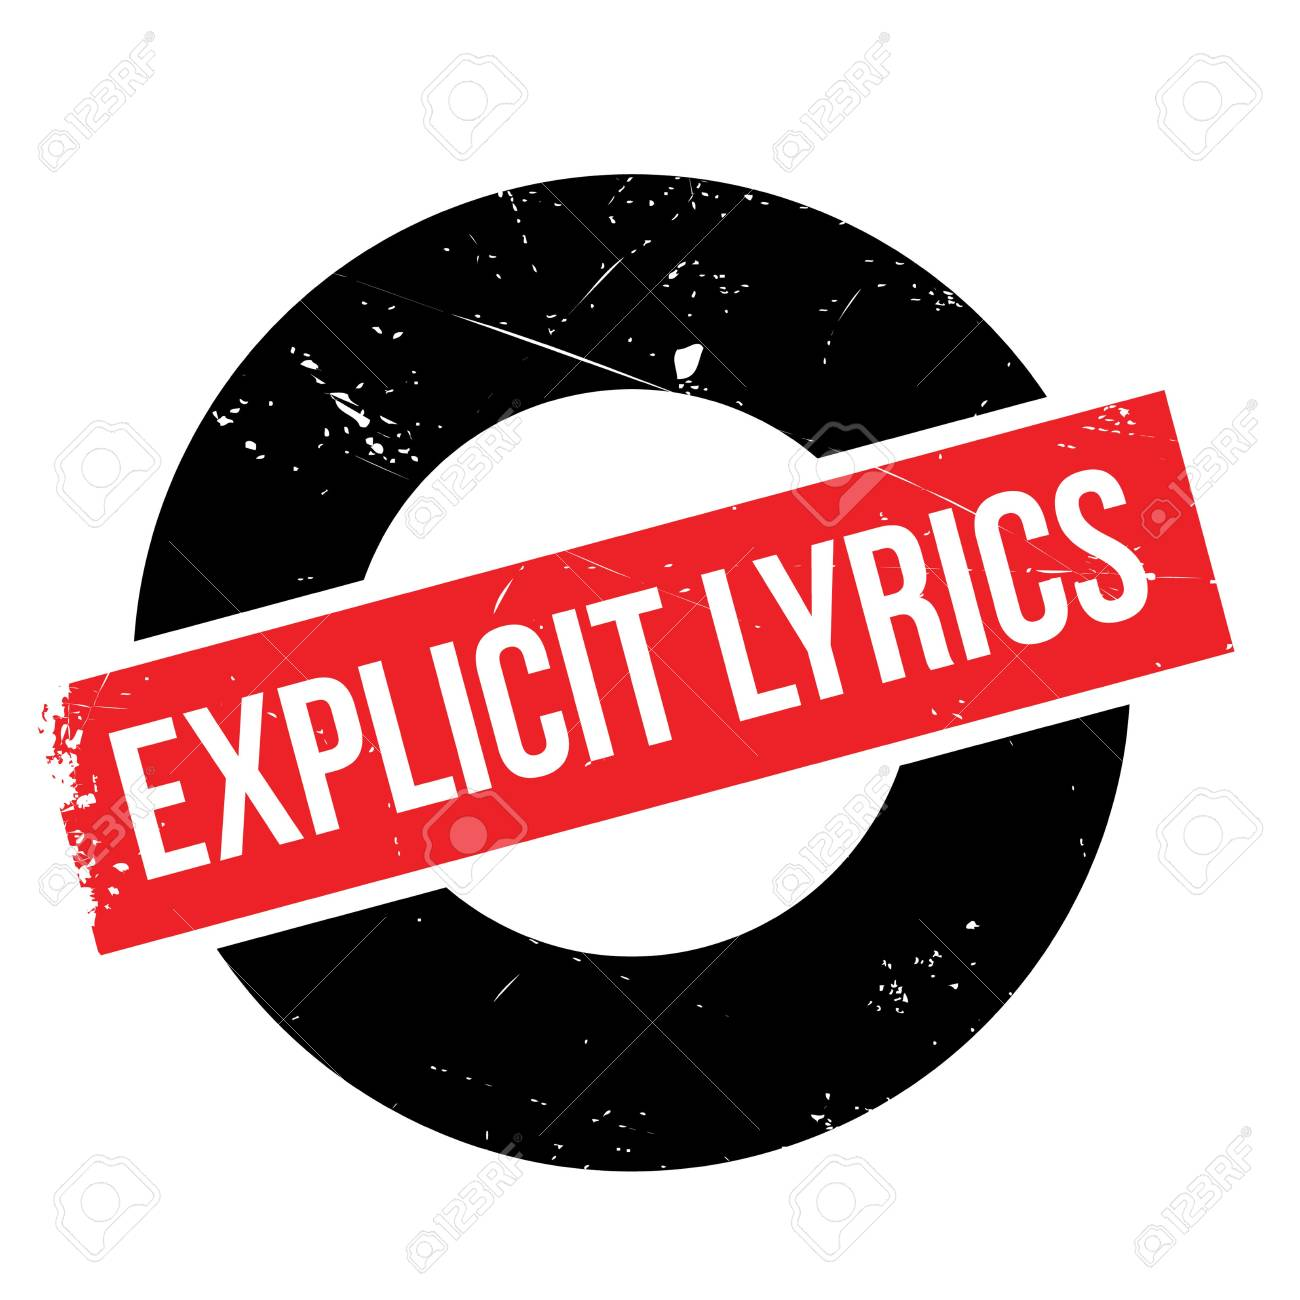 explicit lyrics label